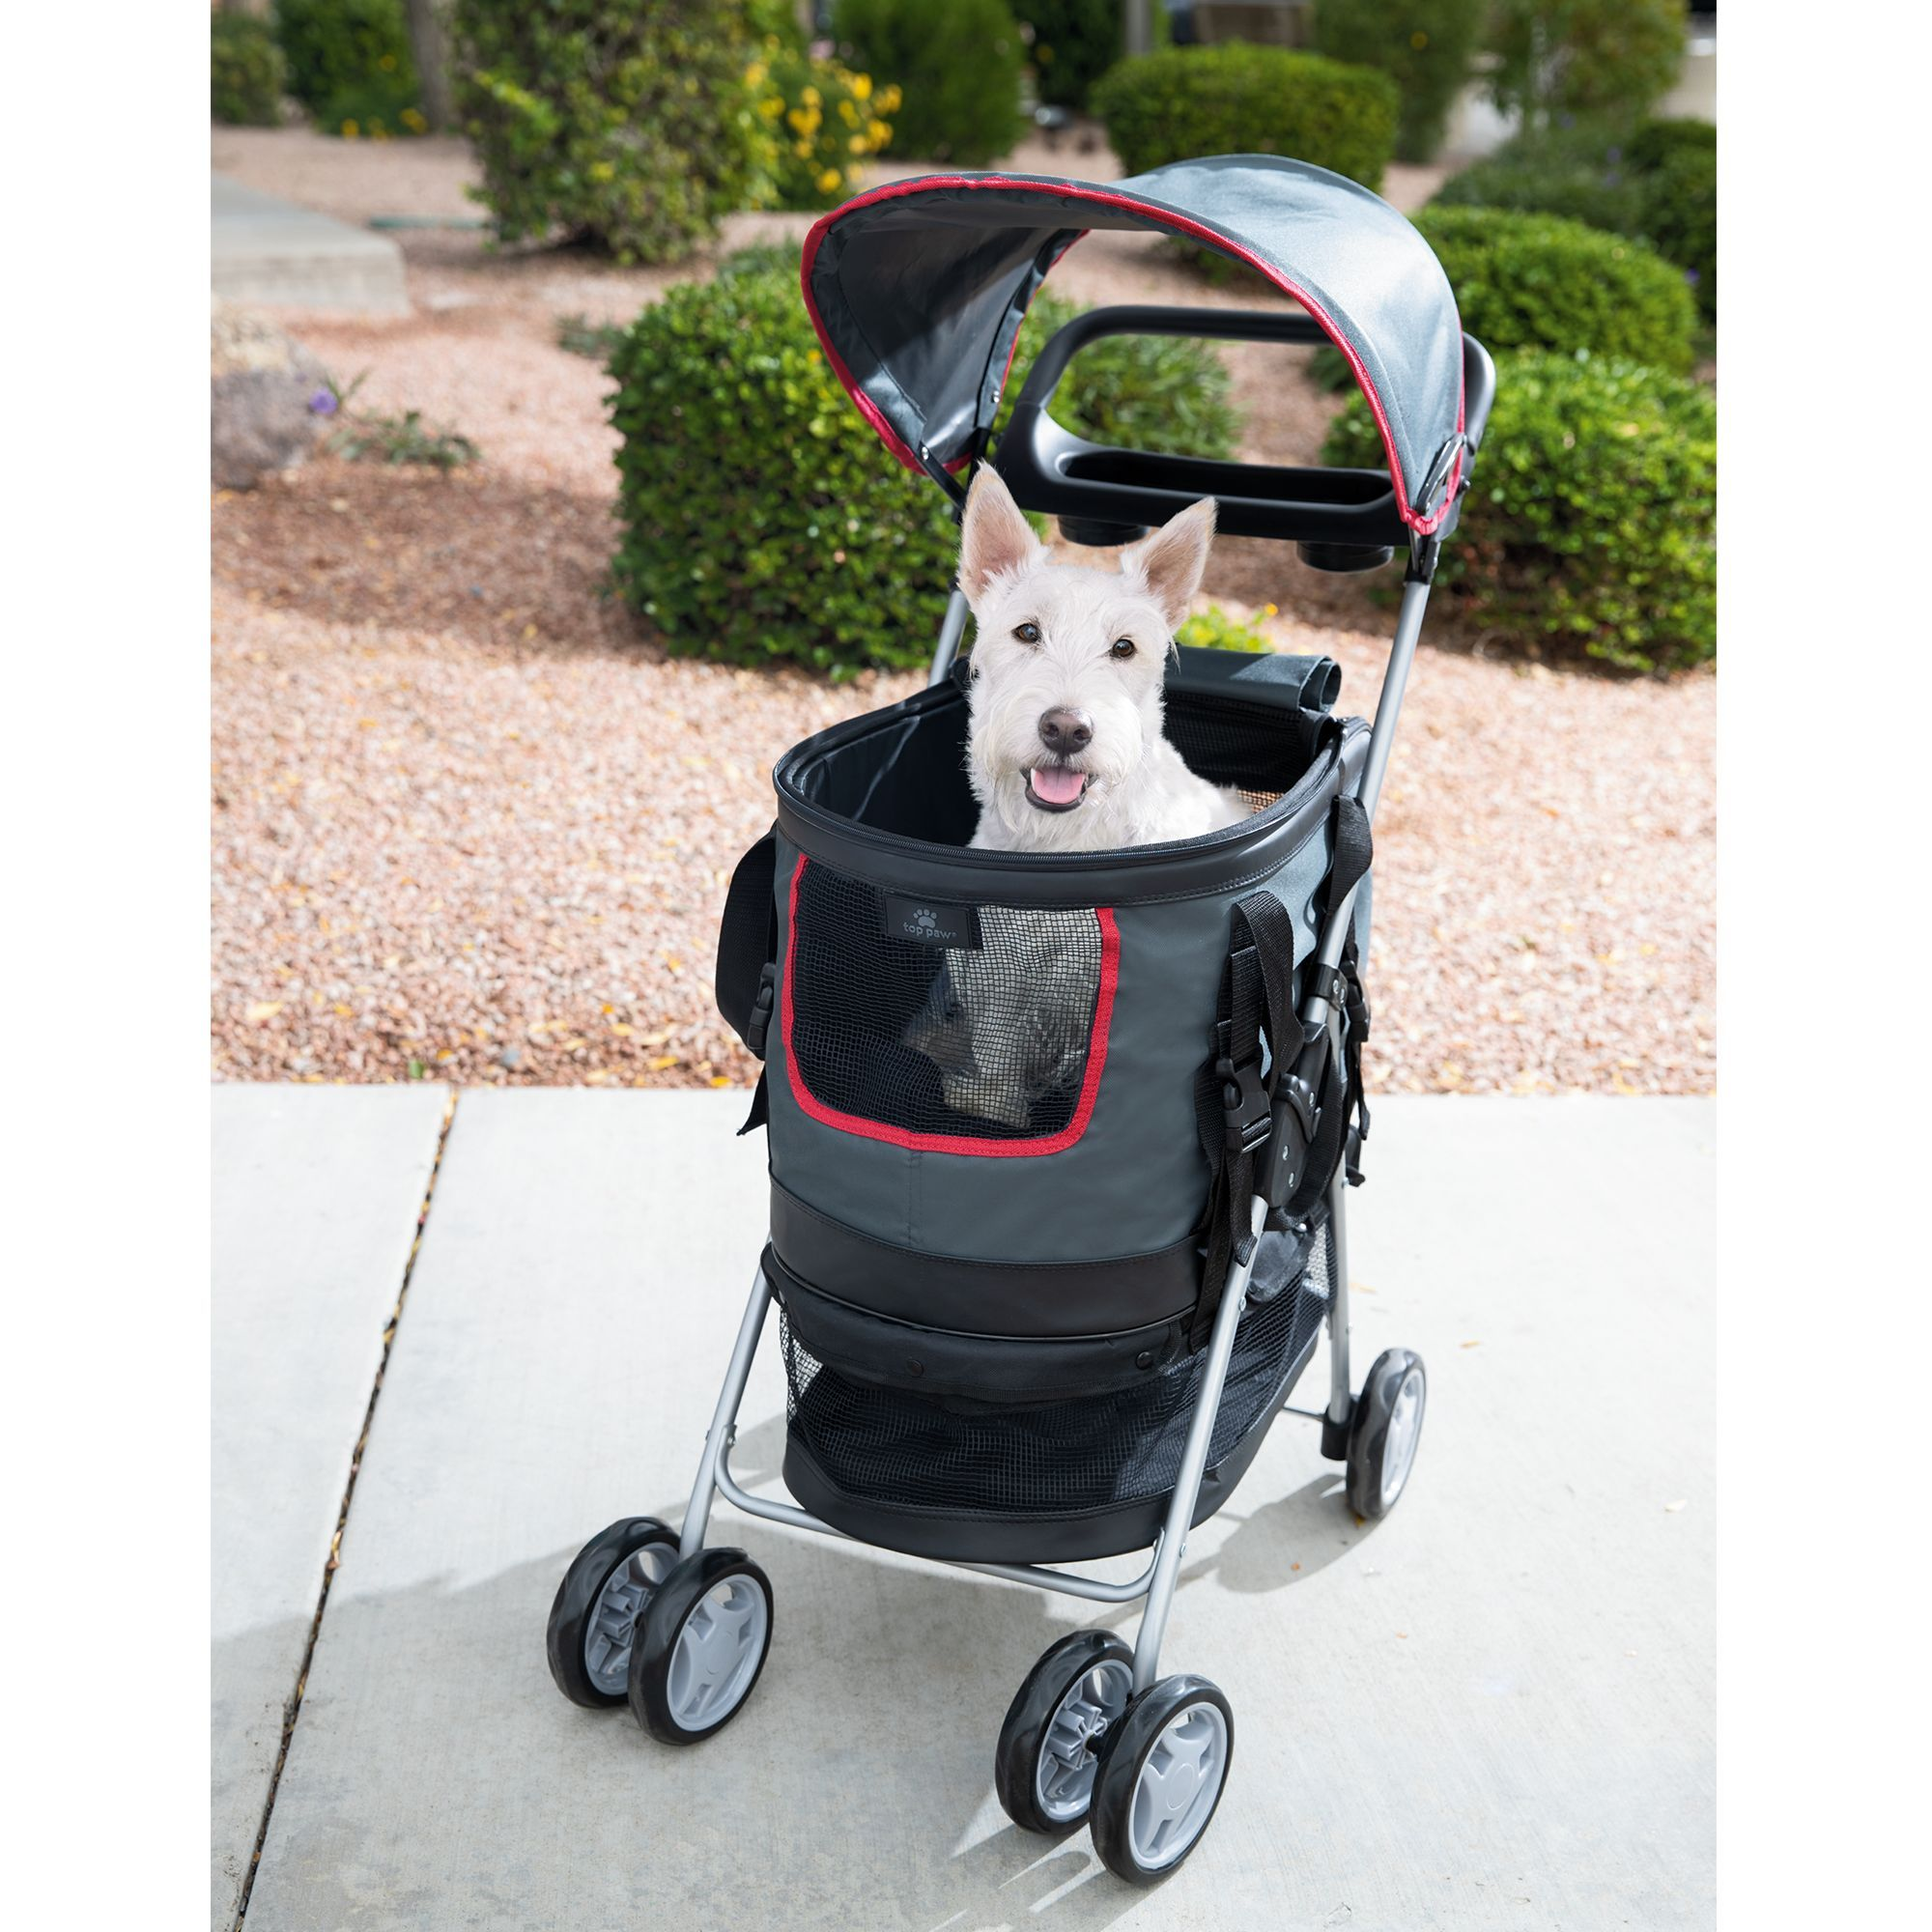 Top Paw 3in1 Pet Stroller, black/grey/red Pet stroller